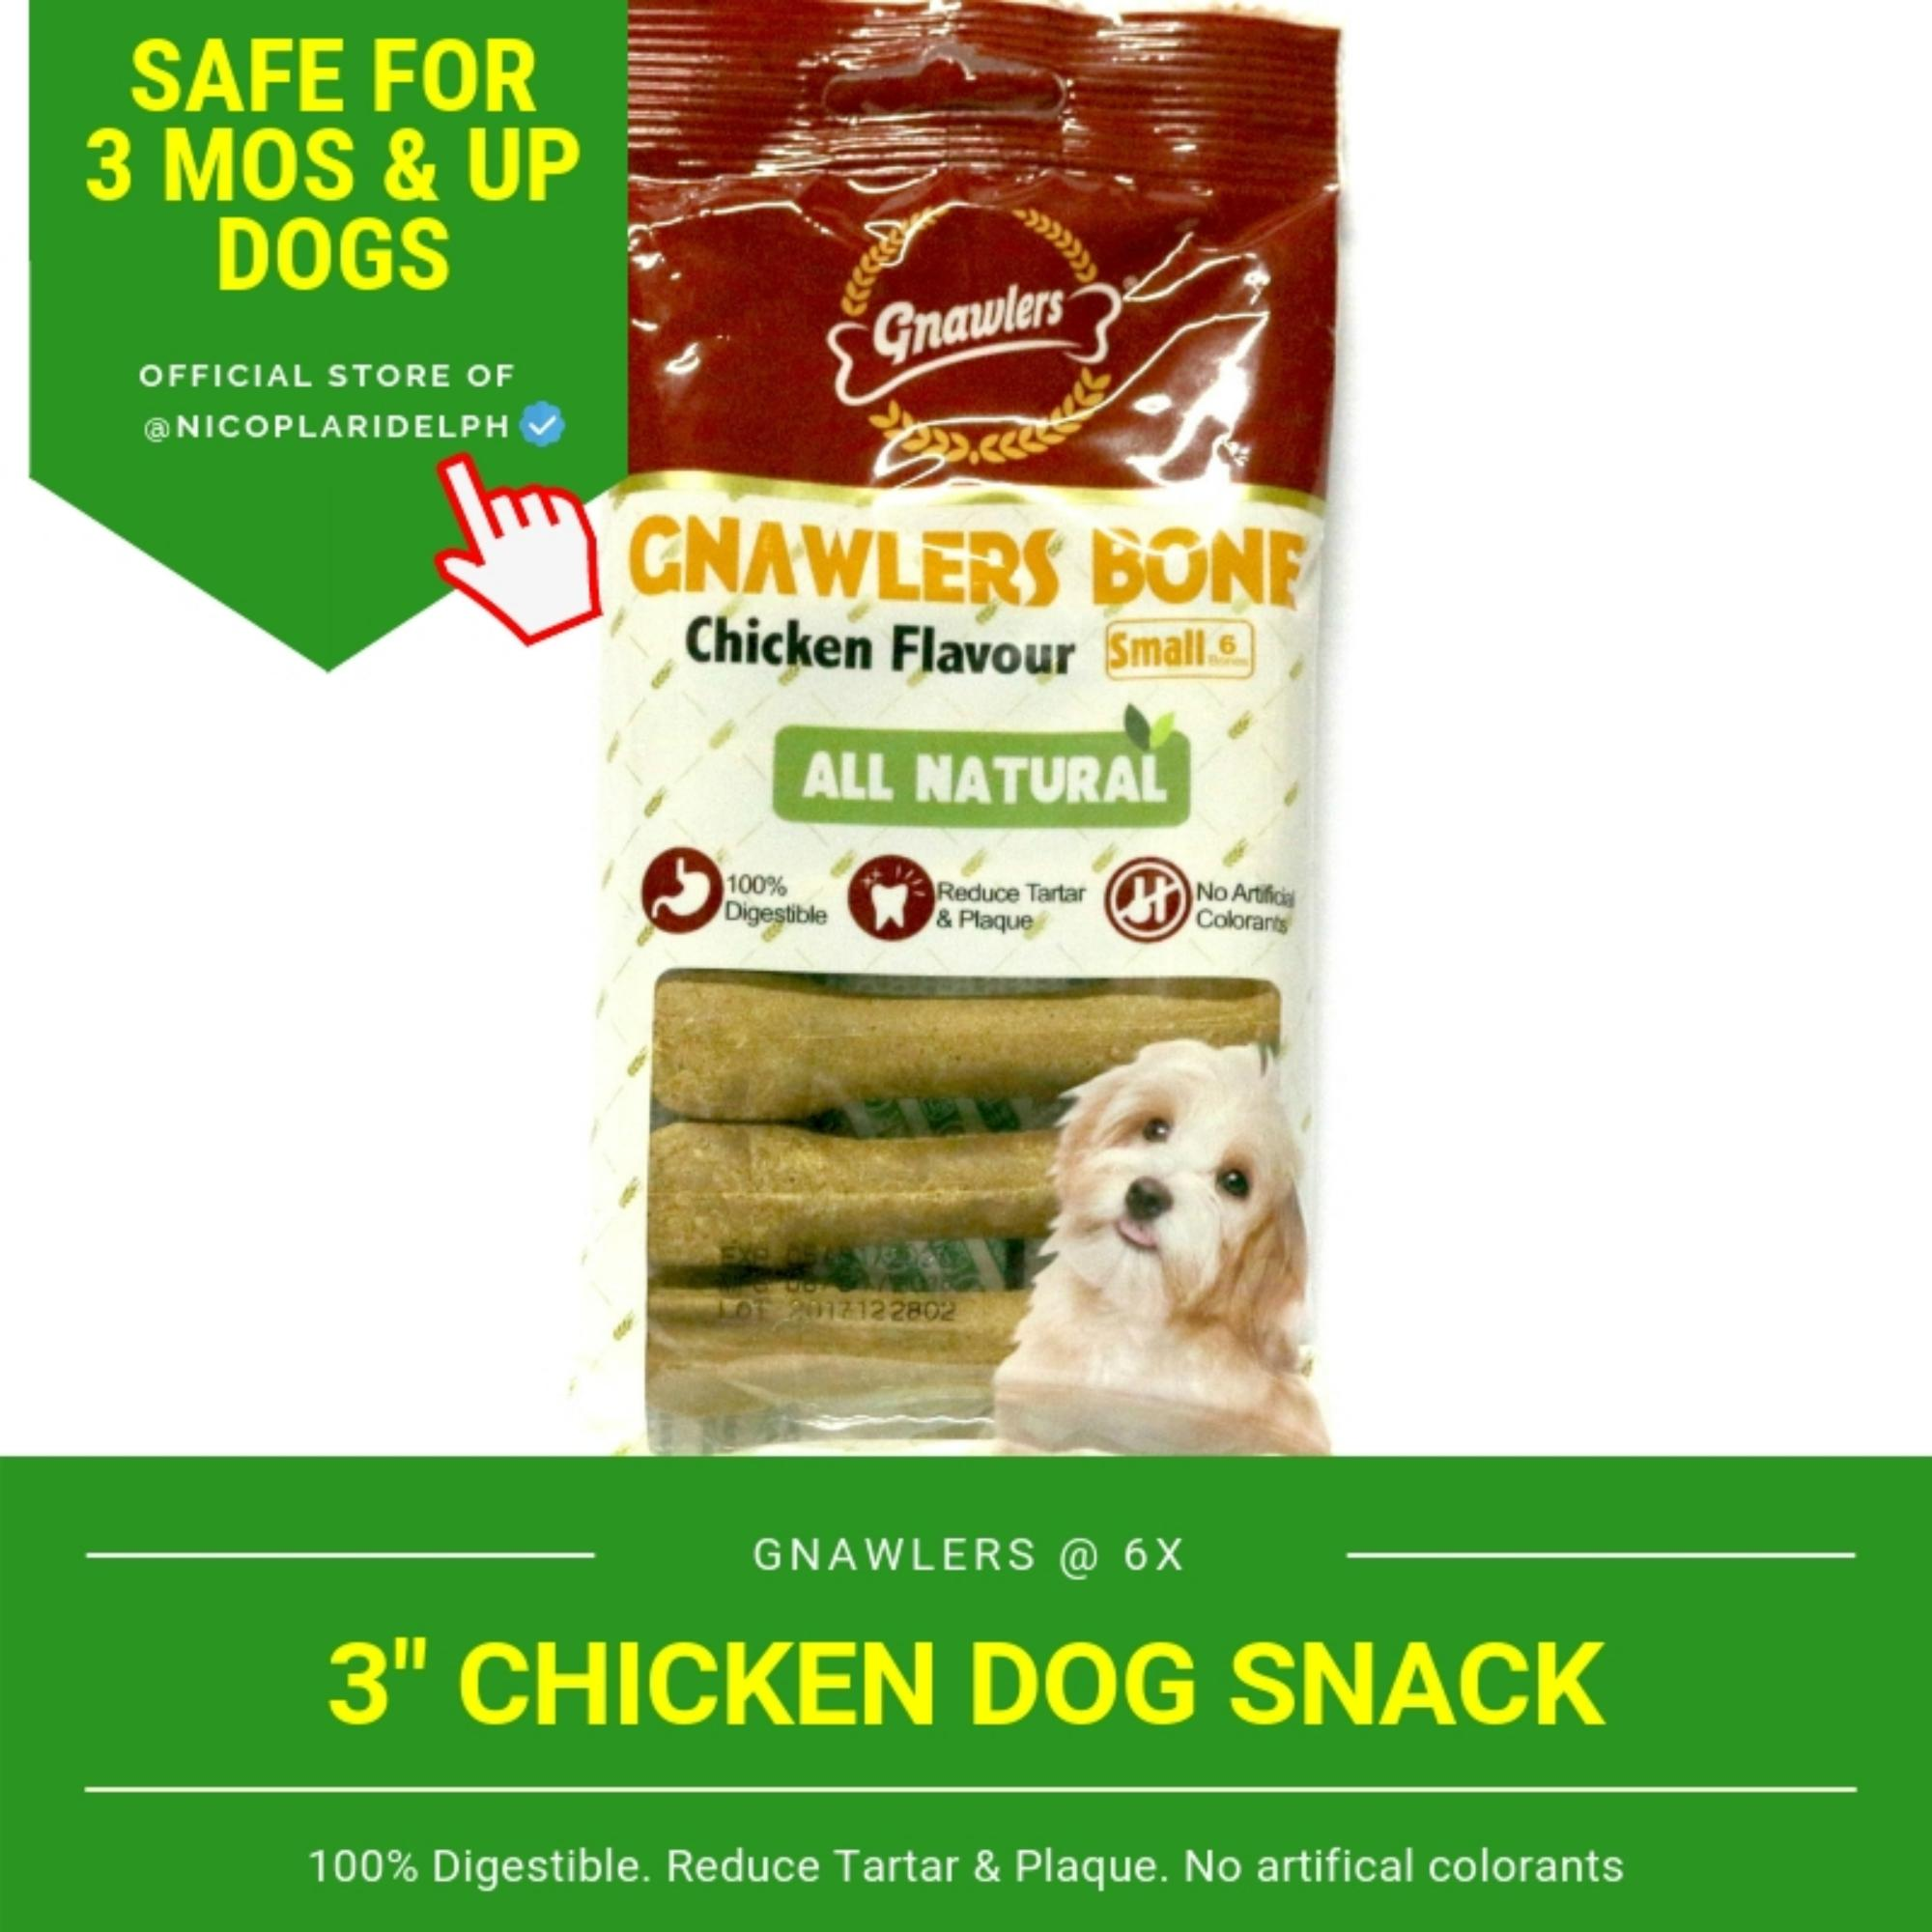 Gnawlers 3-Inch Chicken Dog Snack (108g) By Nicoplaridelph.